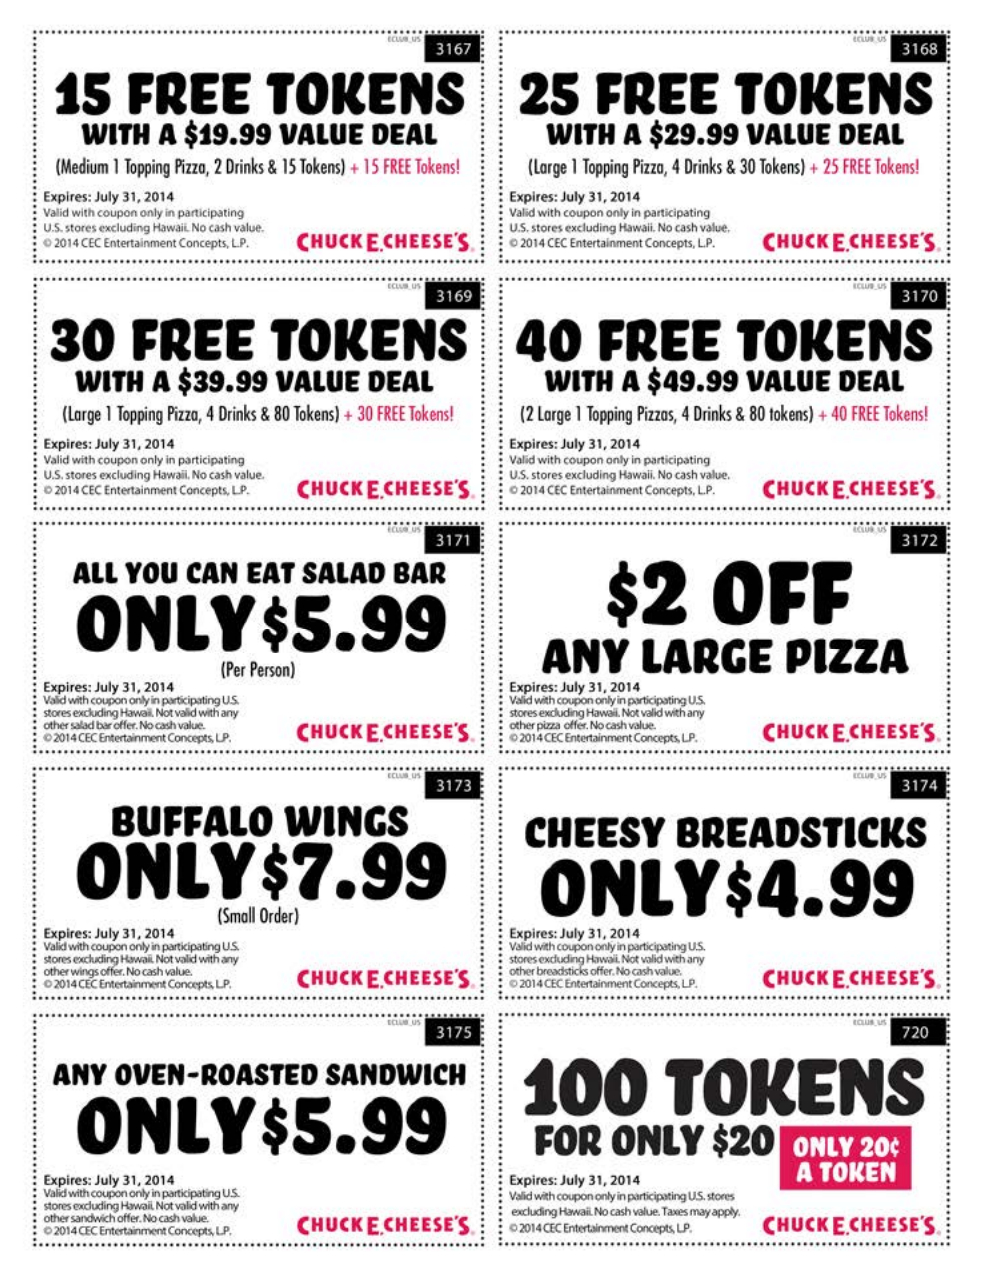 Pinann Anna On Chuck E Cheese Coupons | Pizza Coupons, Free - Free Printable Coupons 2014